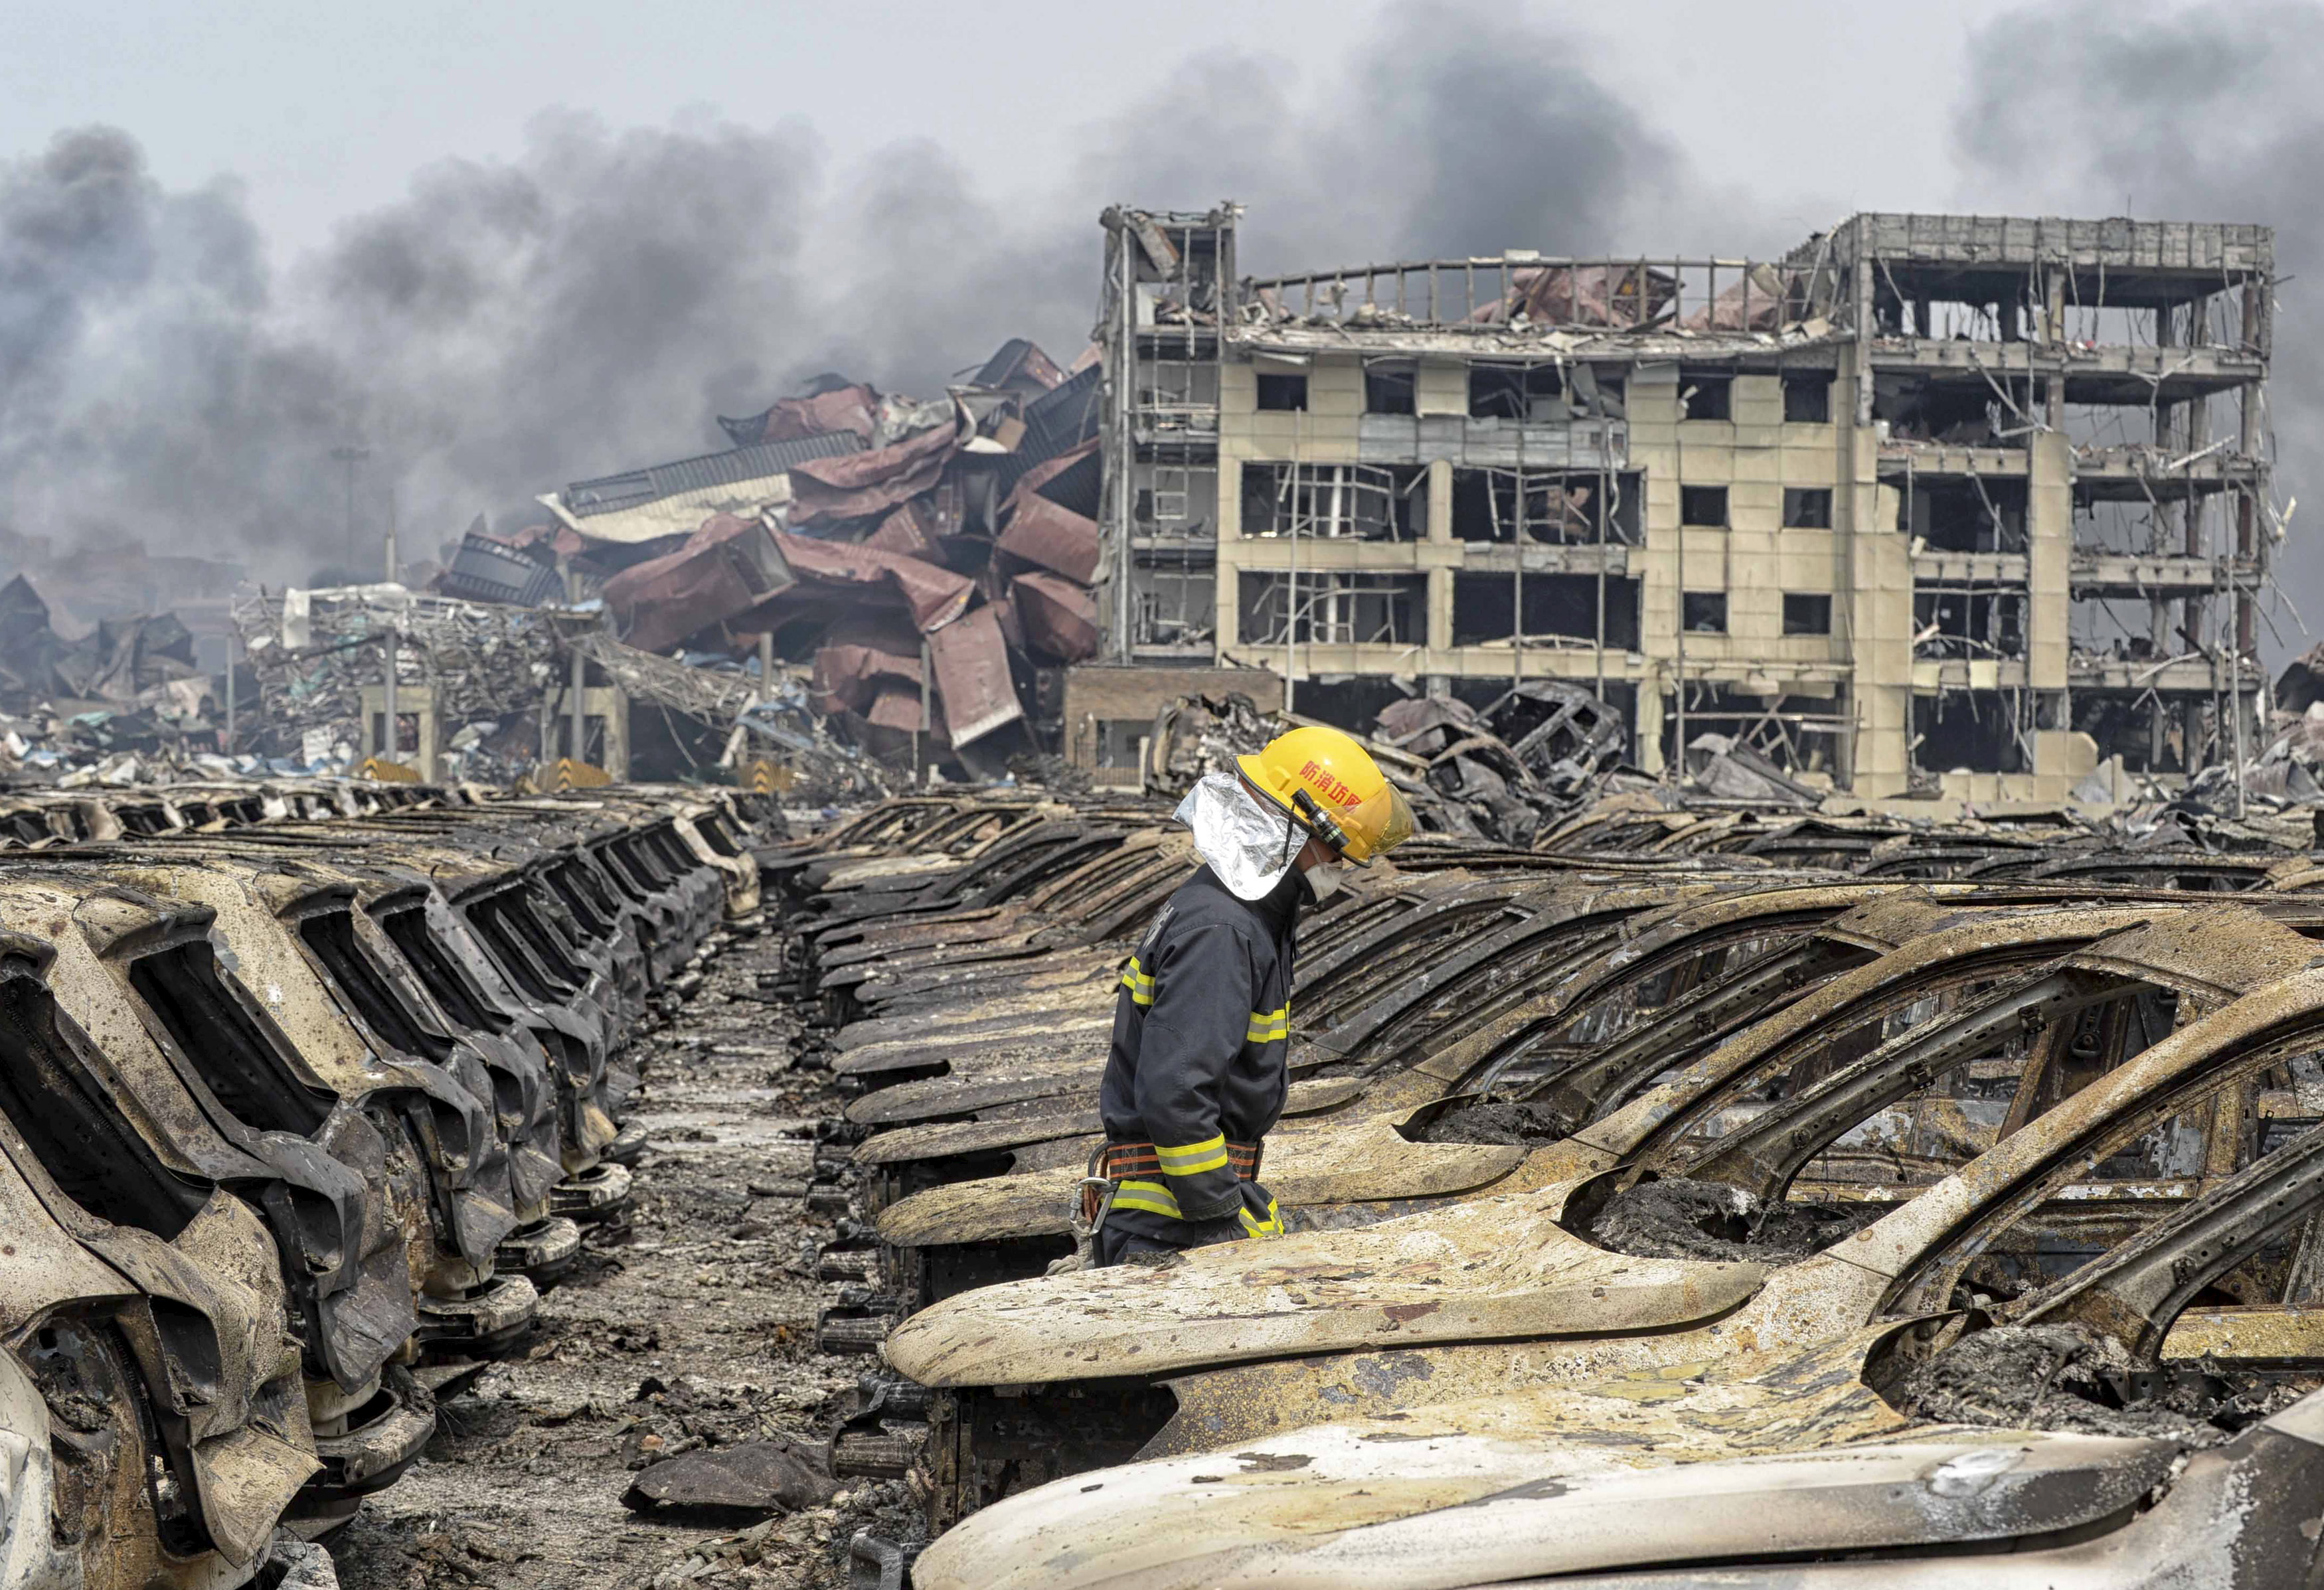 A firefighter walks among damaged vehicles as smoke rises amidst shipping containers at the site of explosions, at Binhai new district in Tianjin, China, Aug. 14, 2015.